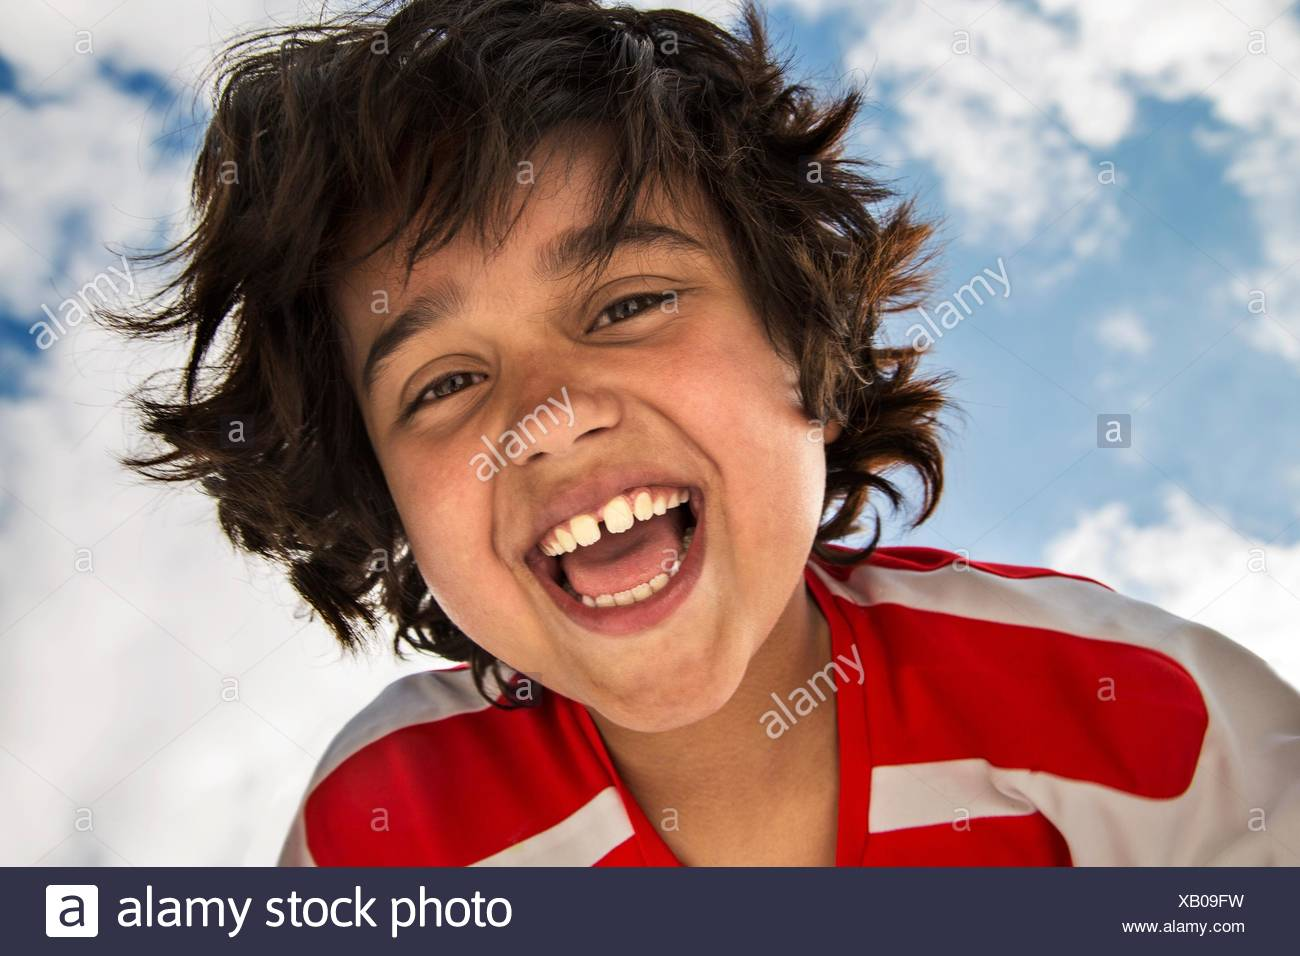 Low angle portrait of smiling boy in front of sky - Stock Image